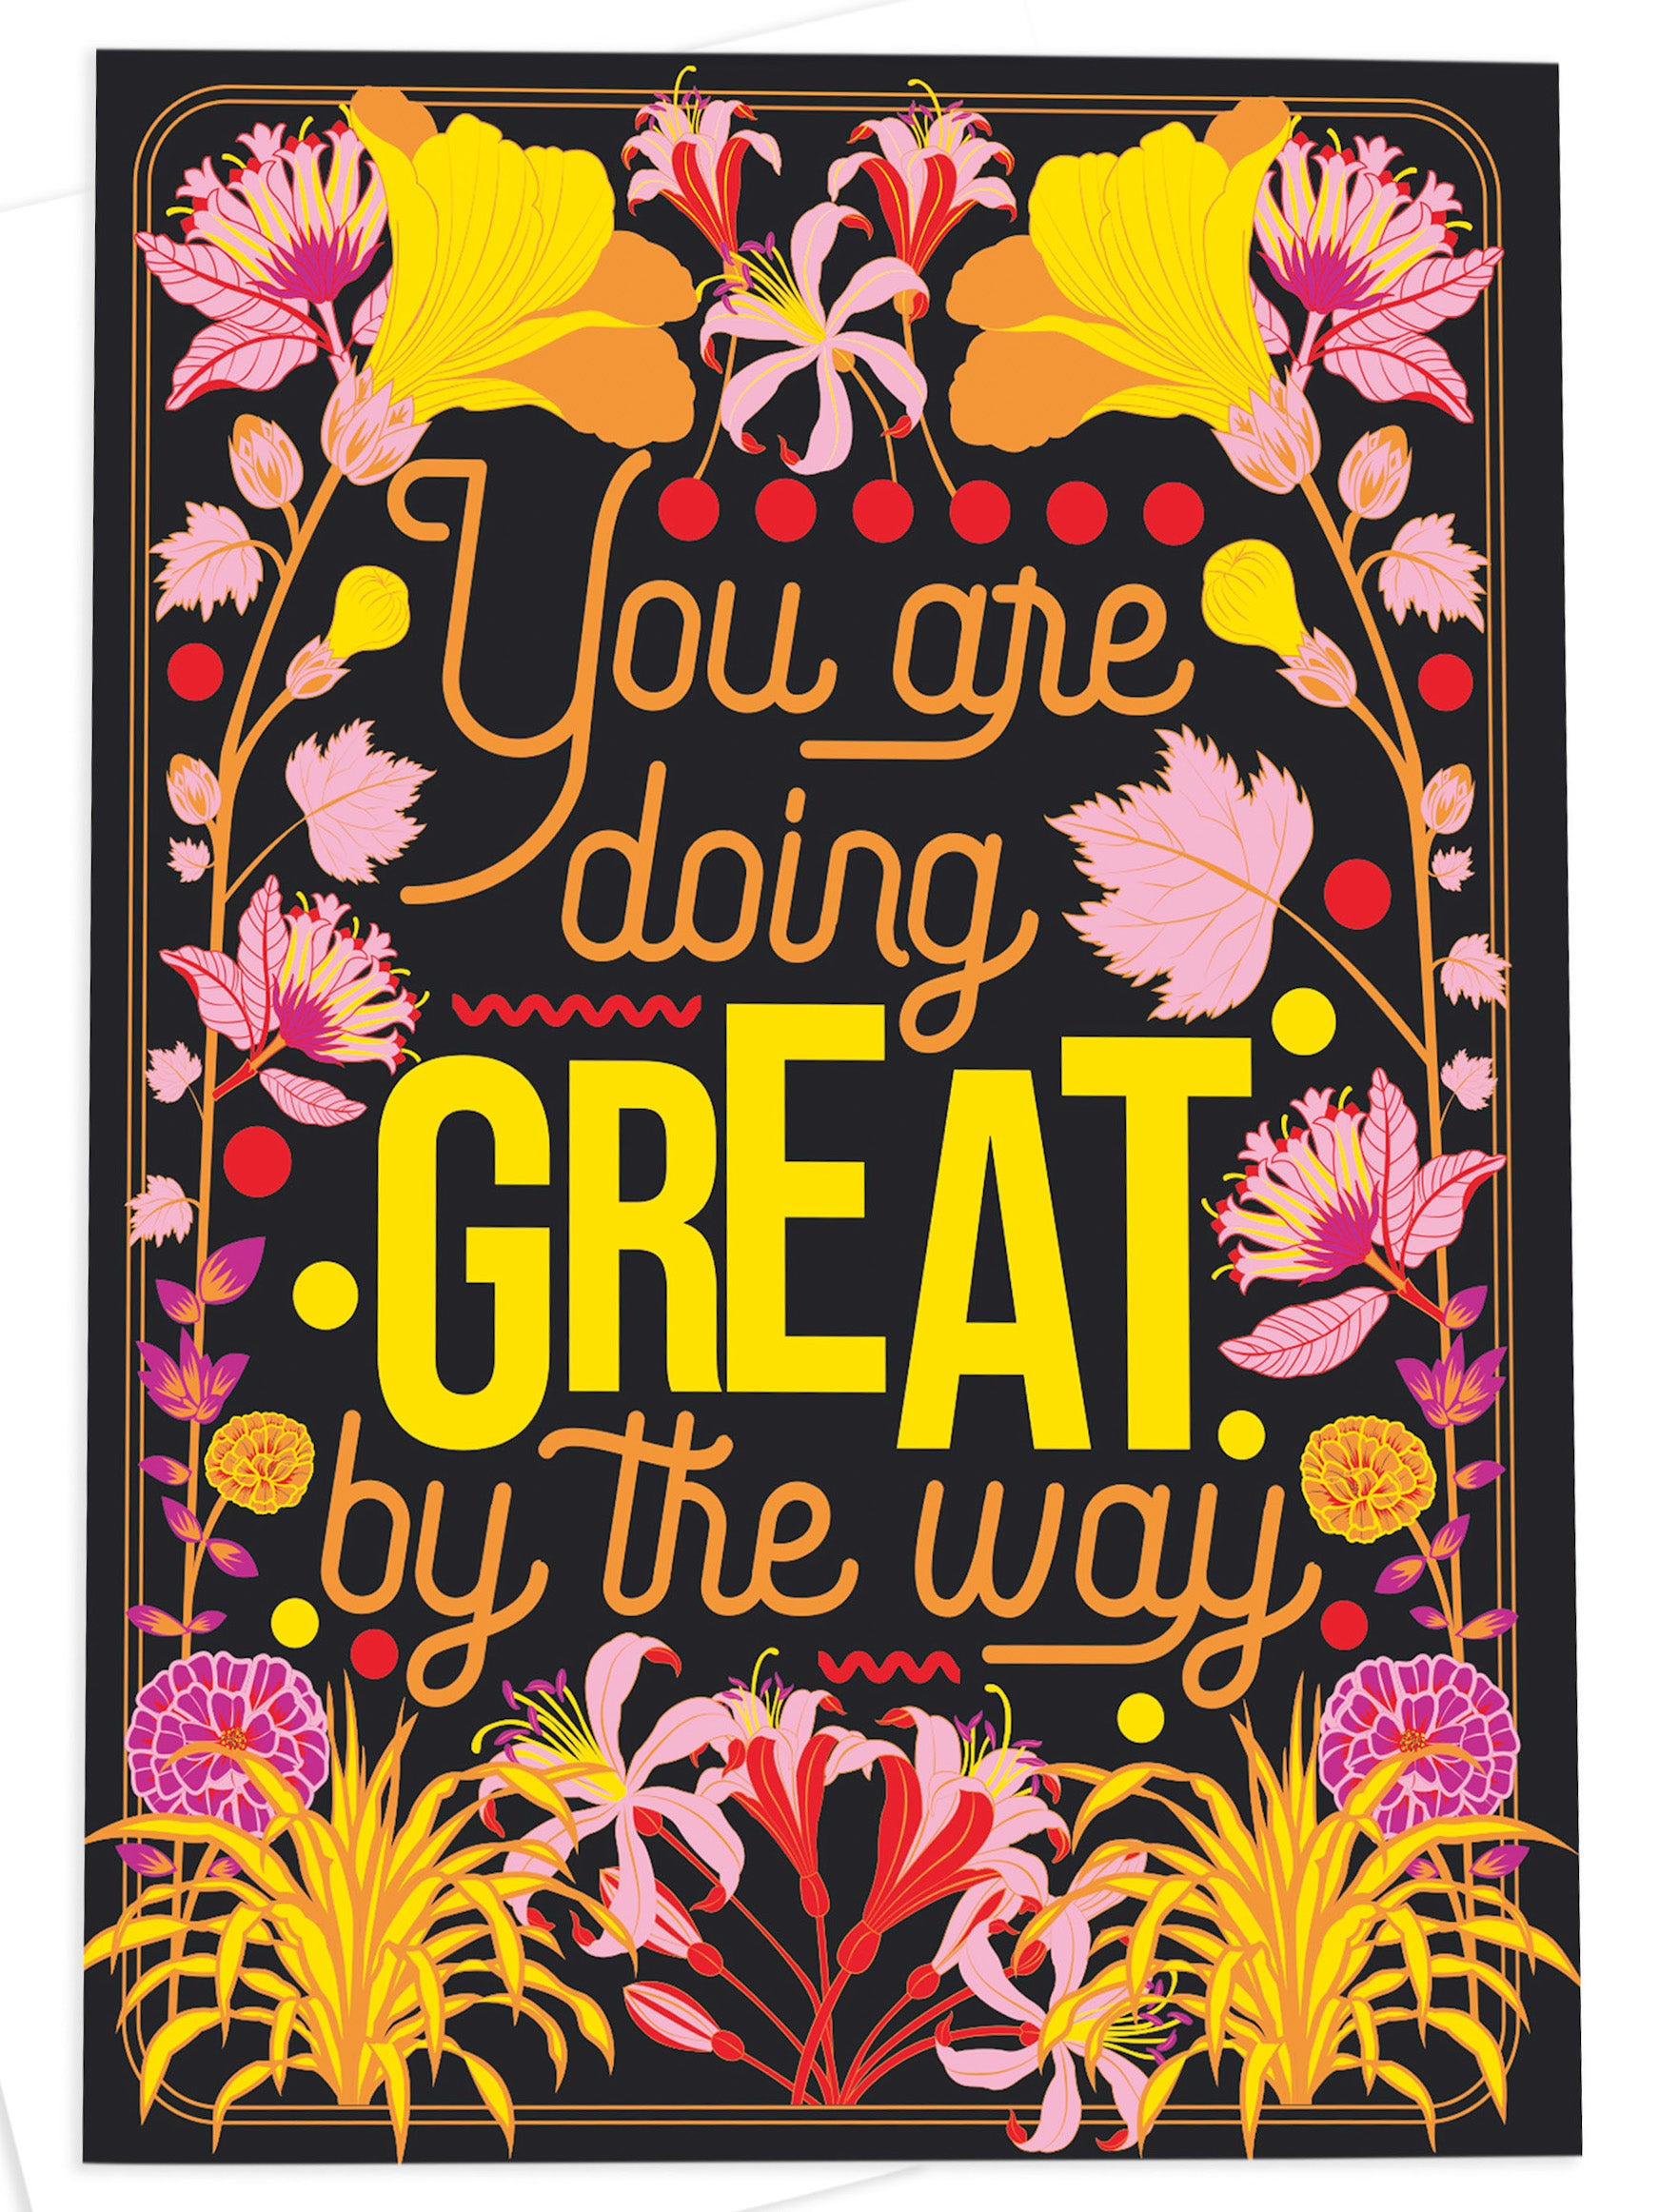 Greetings Card - 'You Are Doing Great' by OMG Kitty